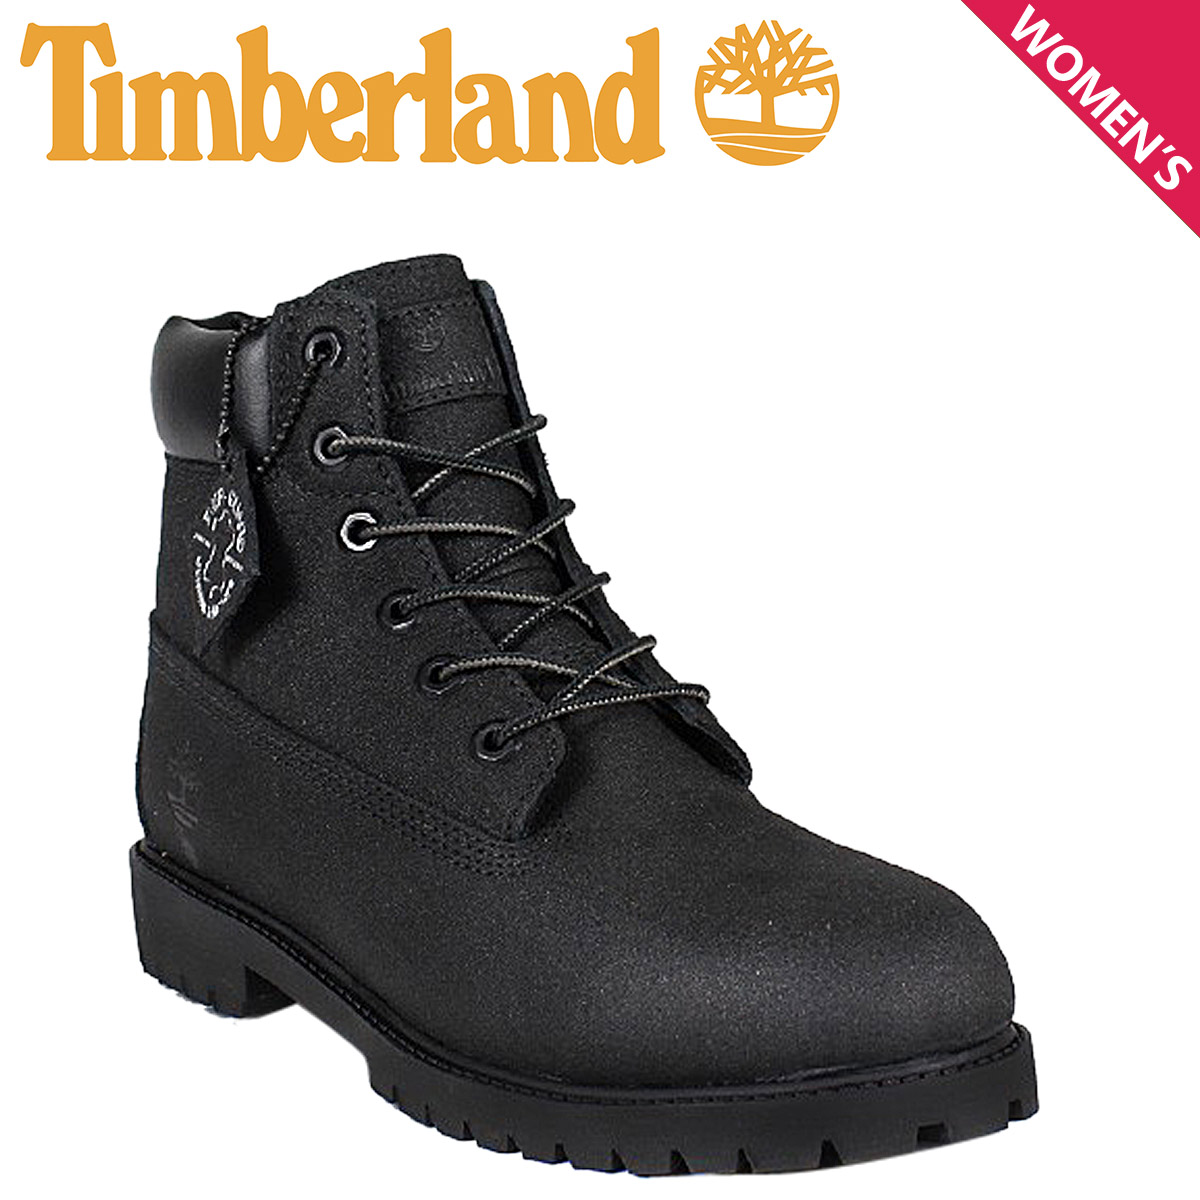 Timberland boots Lady's 6 inches Timberland WOMENS 6INCH PREMIUM WATERPROOF BOOTS 8,658A W Wise premium waterproofing black black